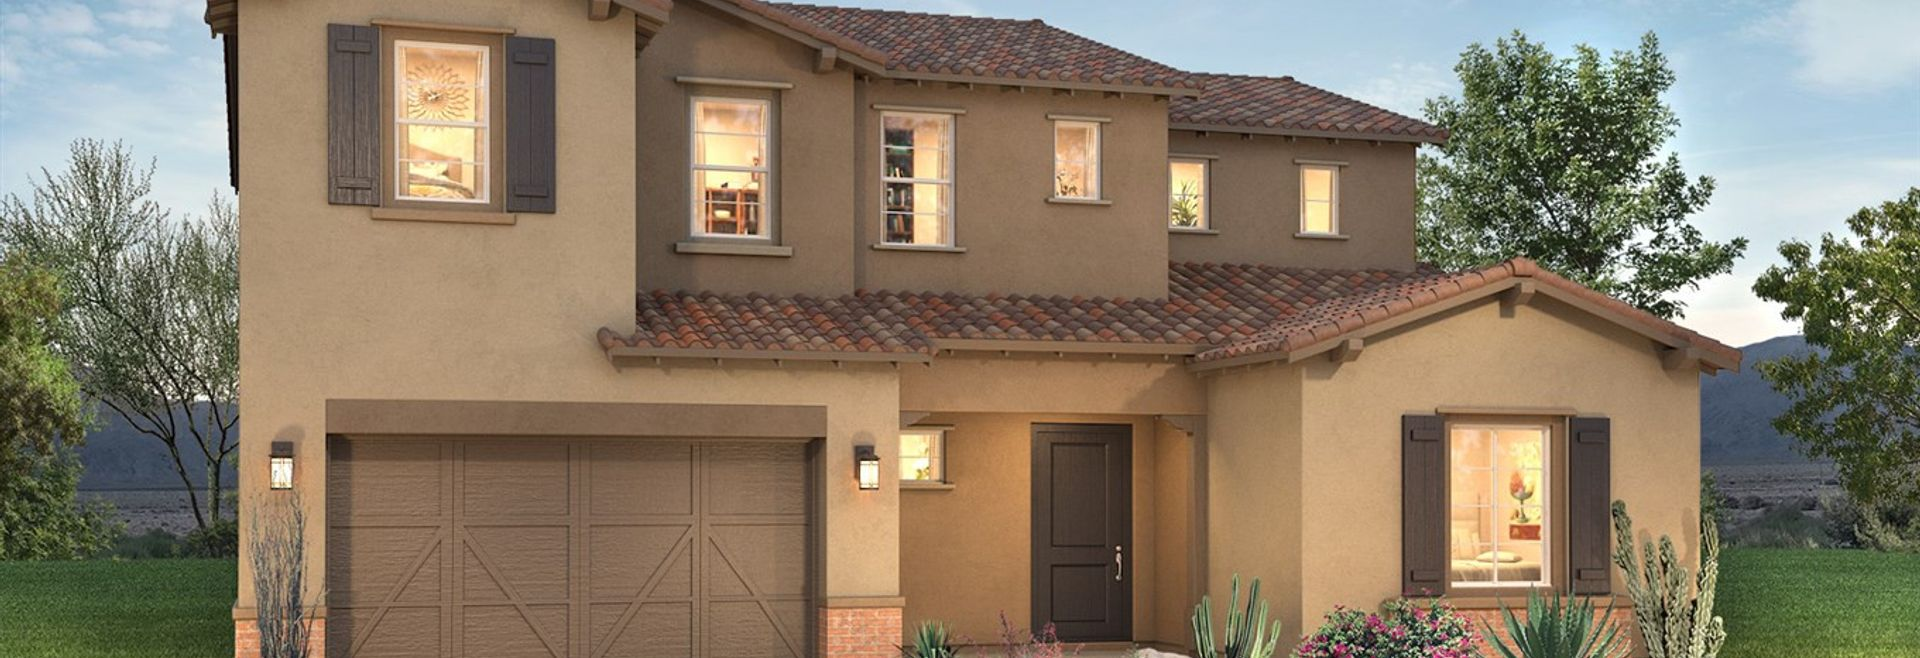 Plan 5015 Exterior B: Adobe Ranch